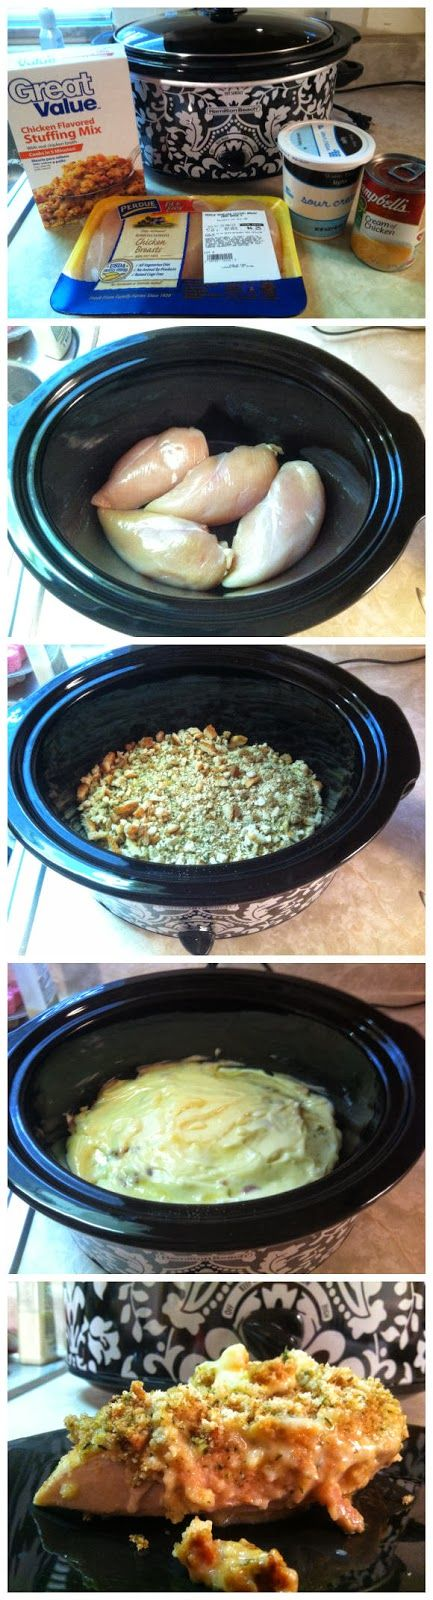 Super Simple Crockpot Chicken & Stuffing. Great thing is – it has only 4 ingredients.